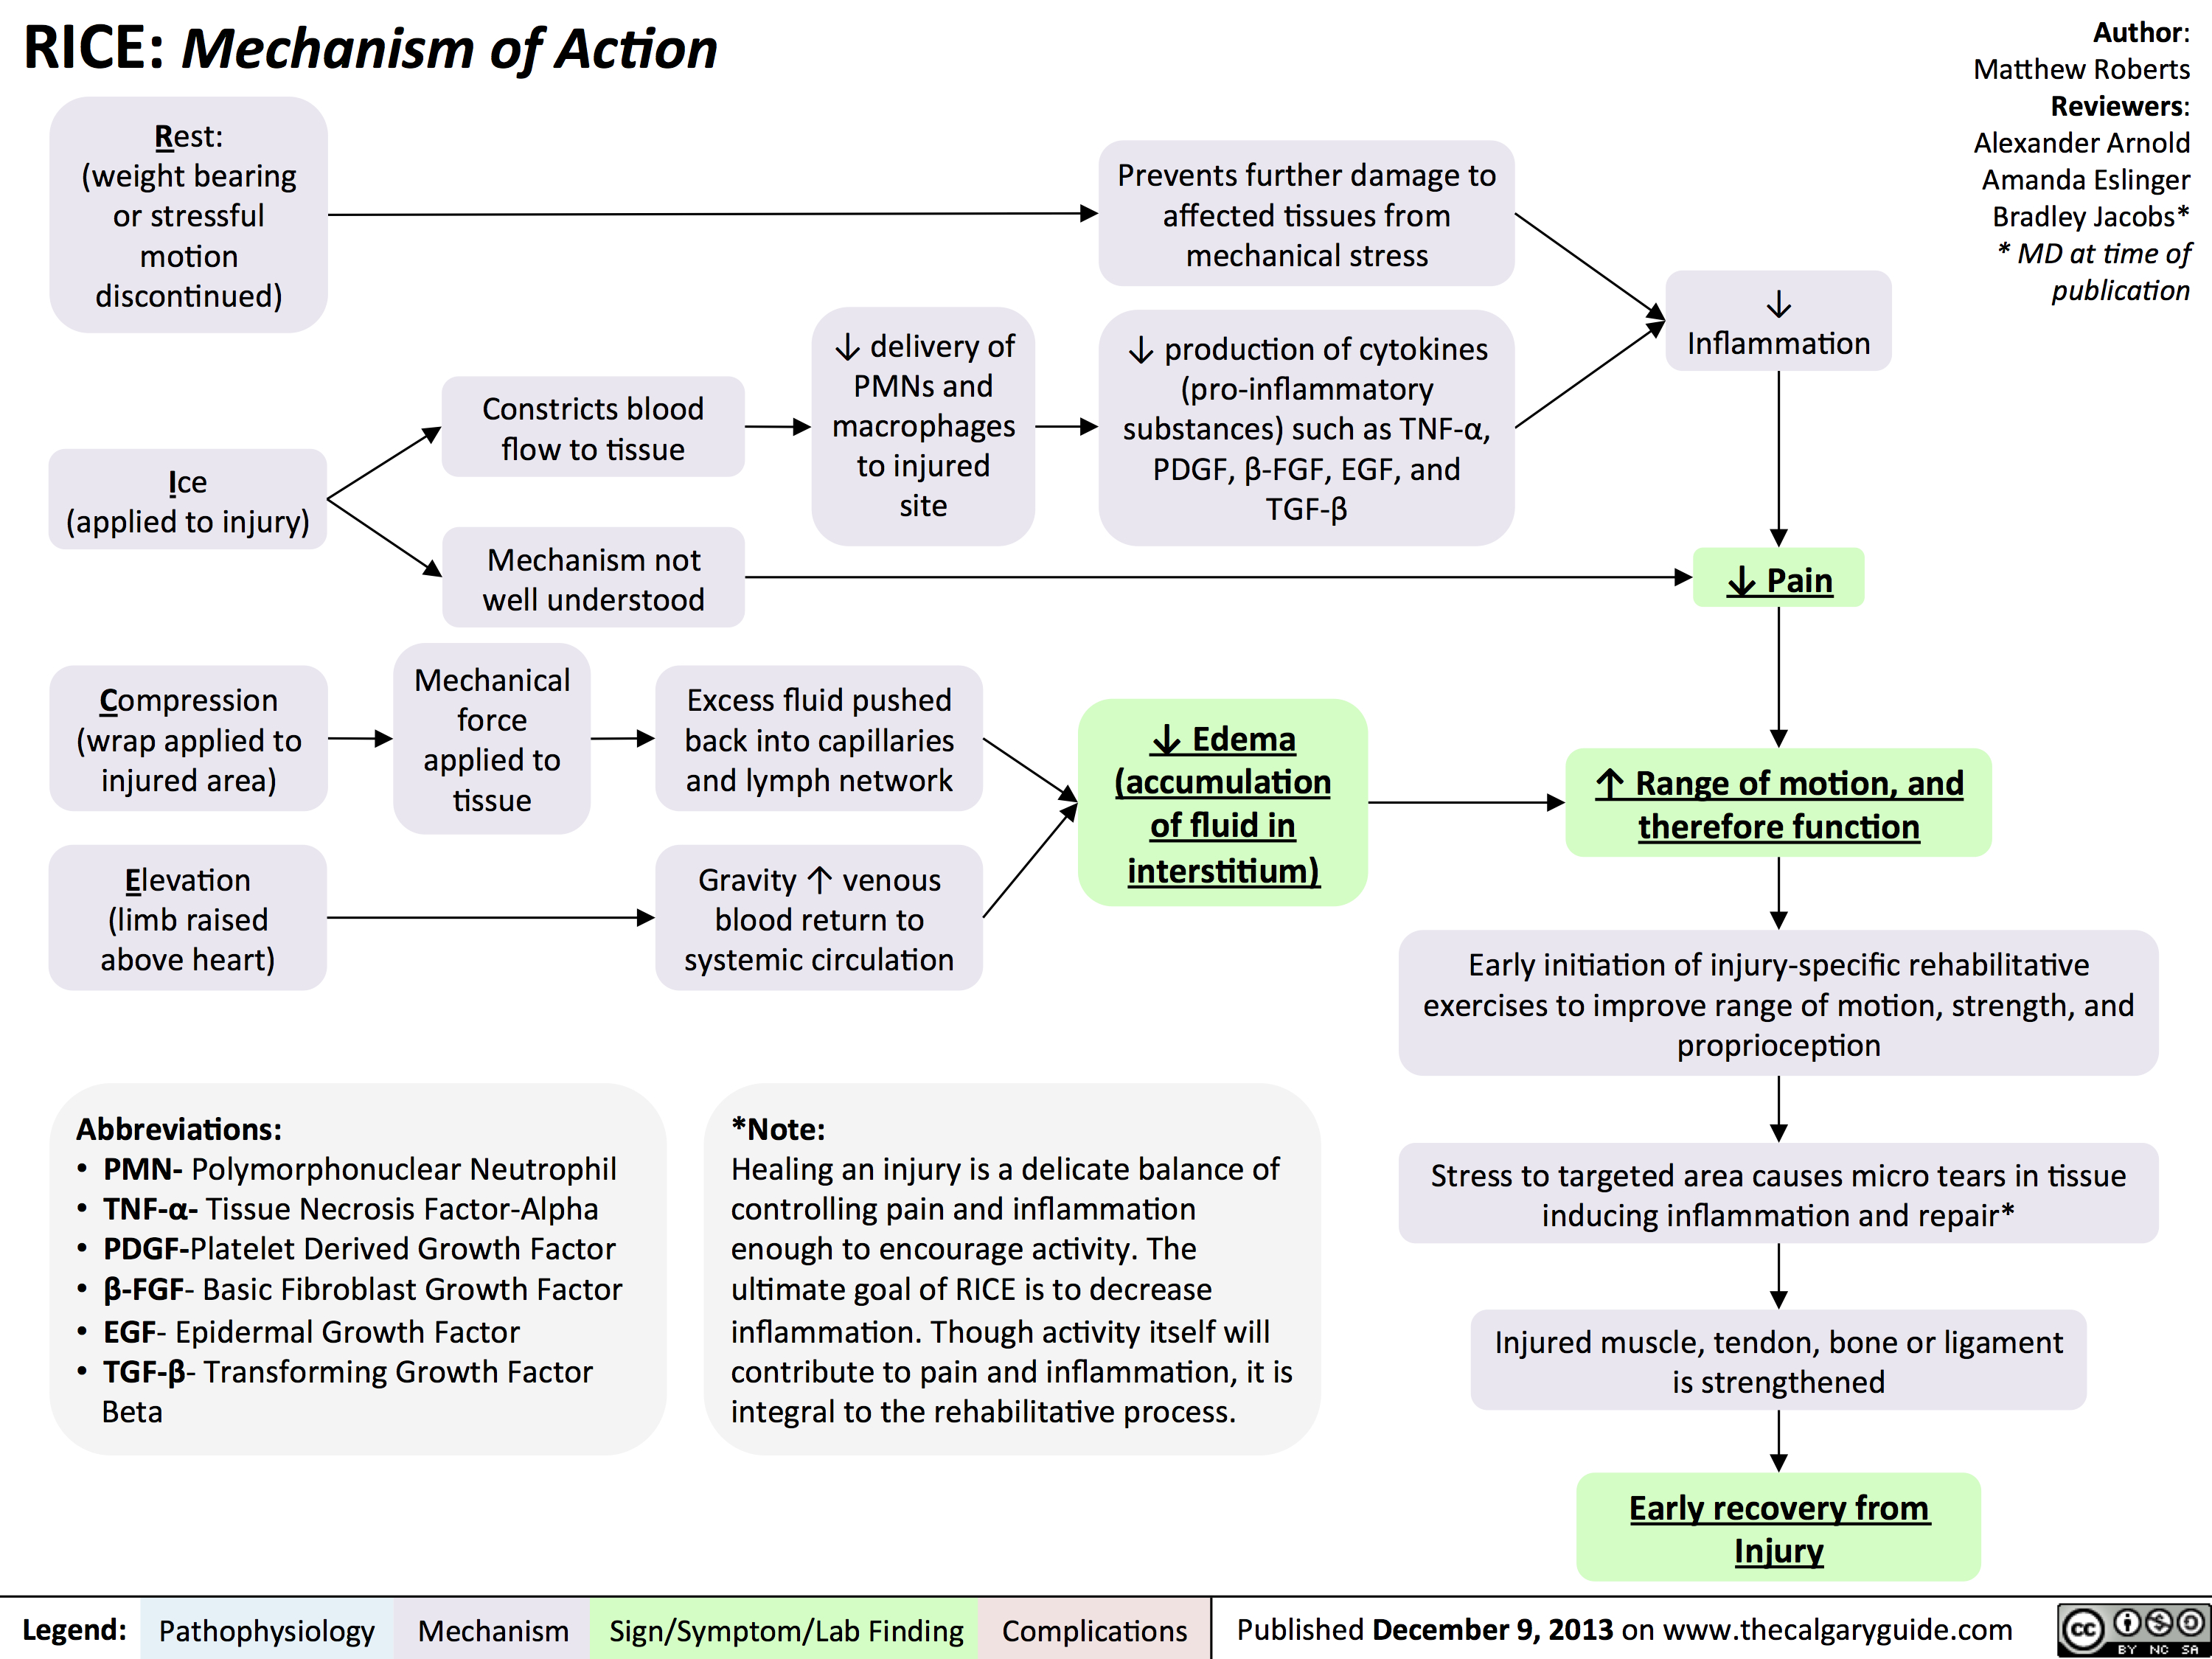 Rice - Mechanism of Action